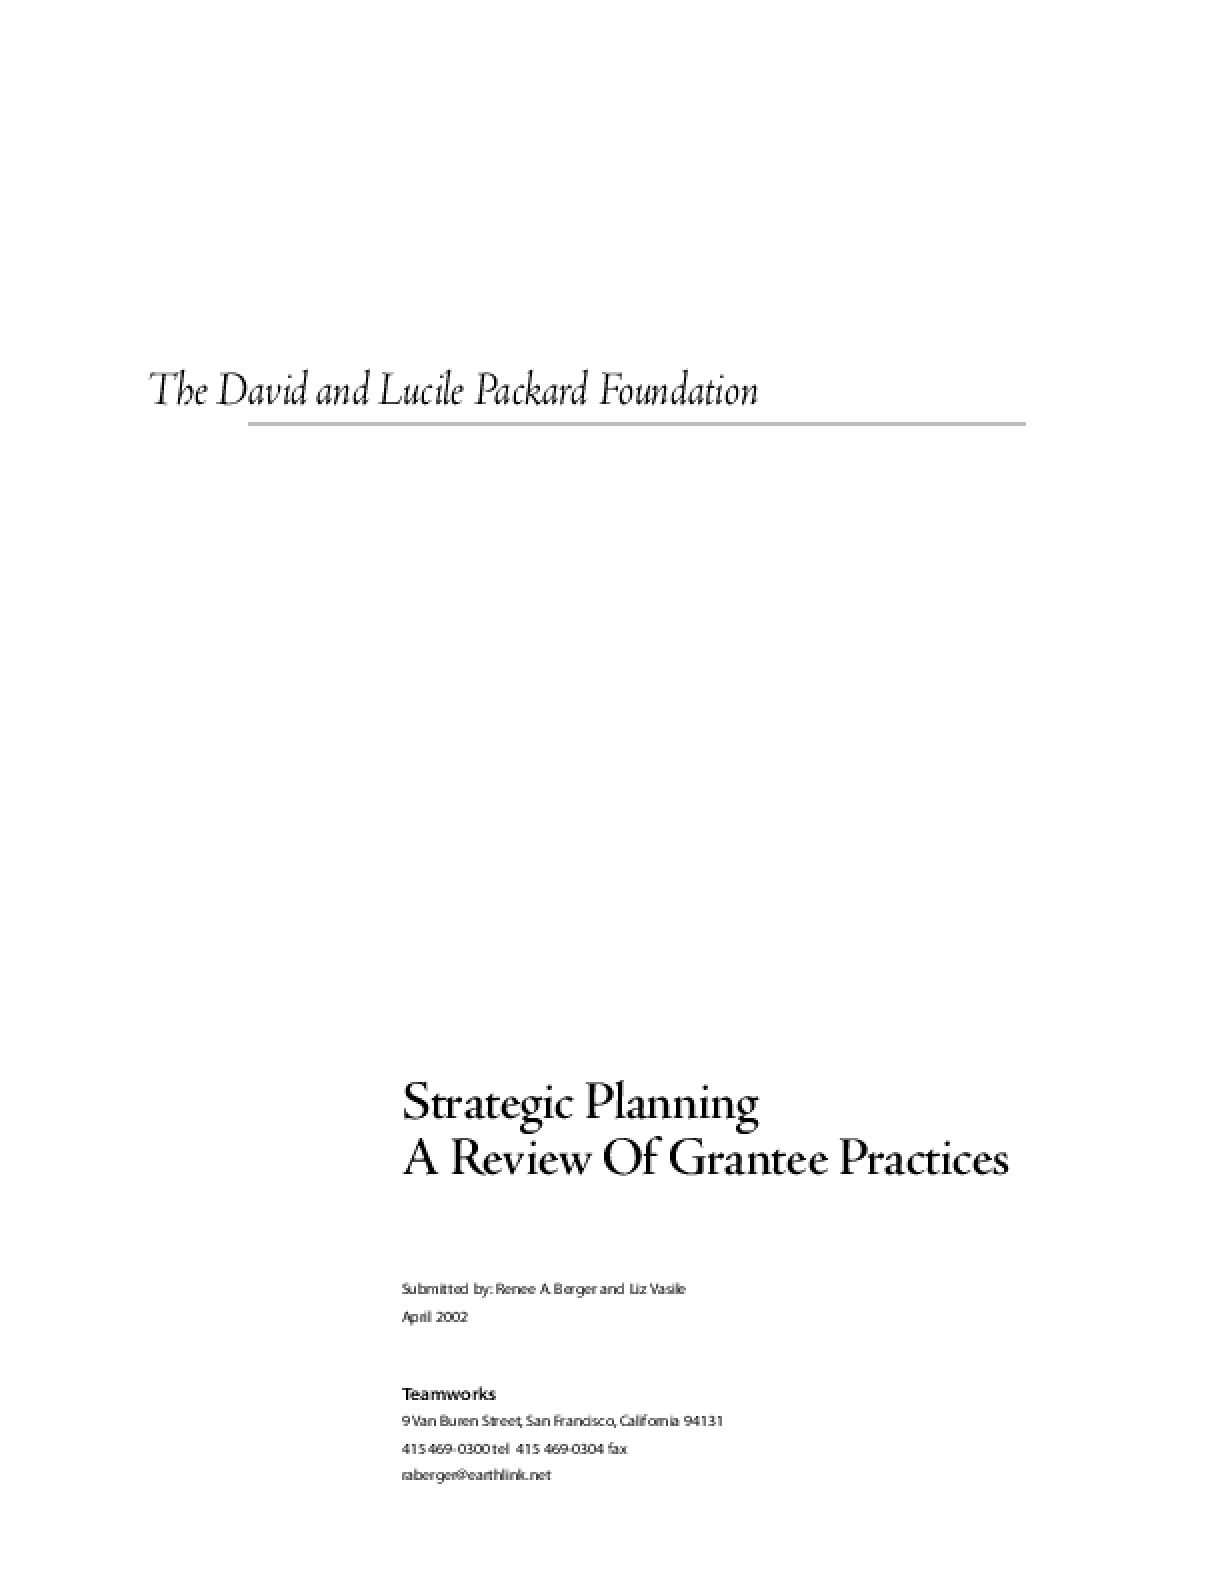 Strategic Planning: A Review of Grantee Practices